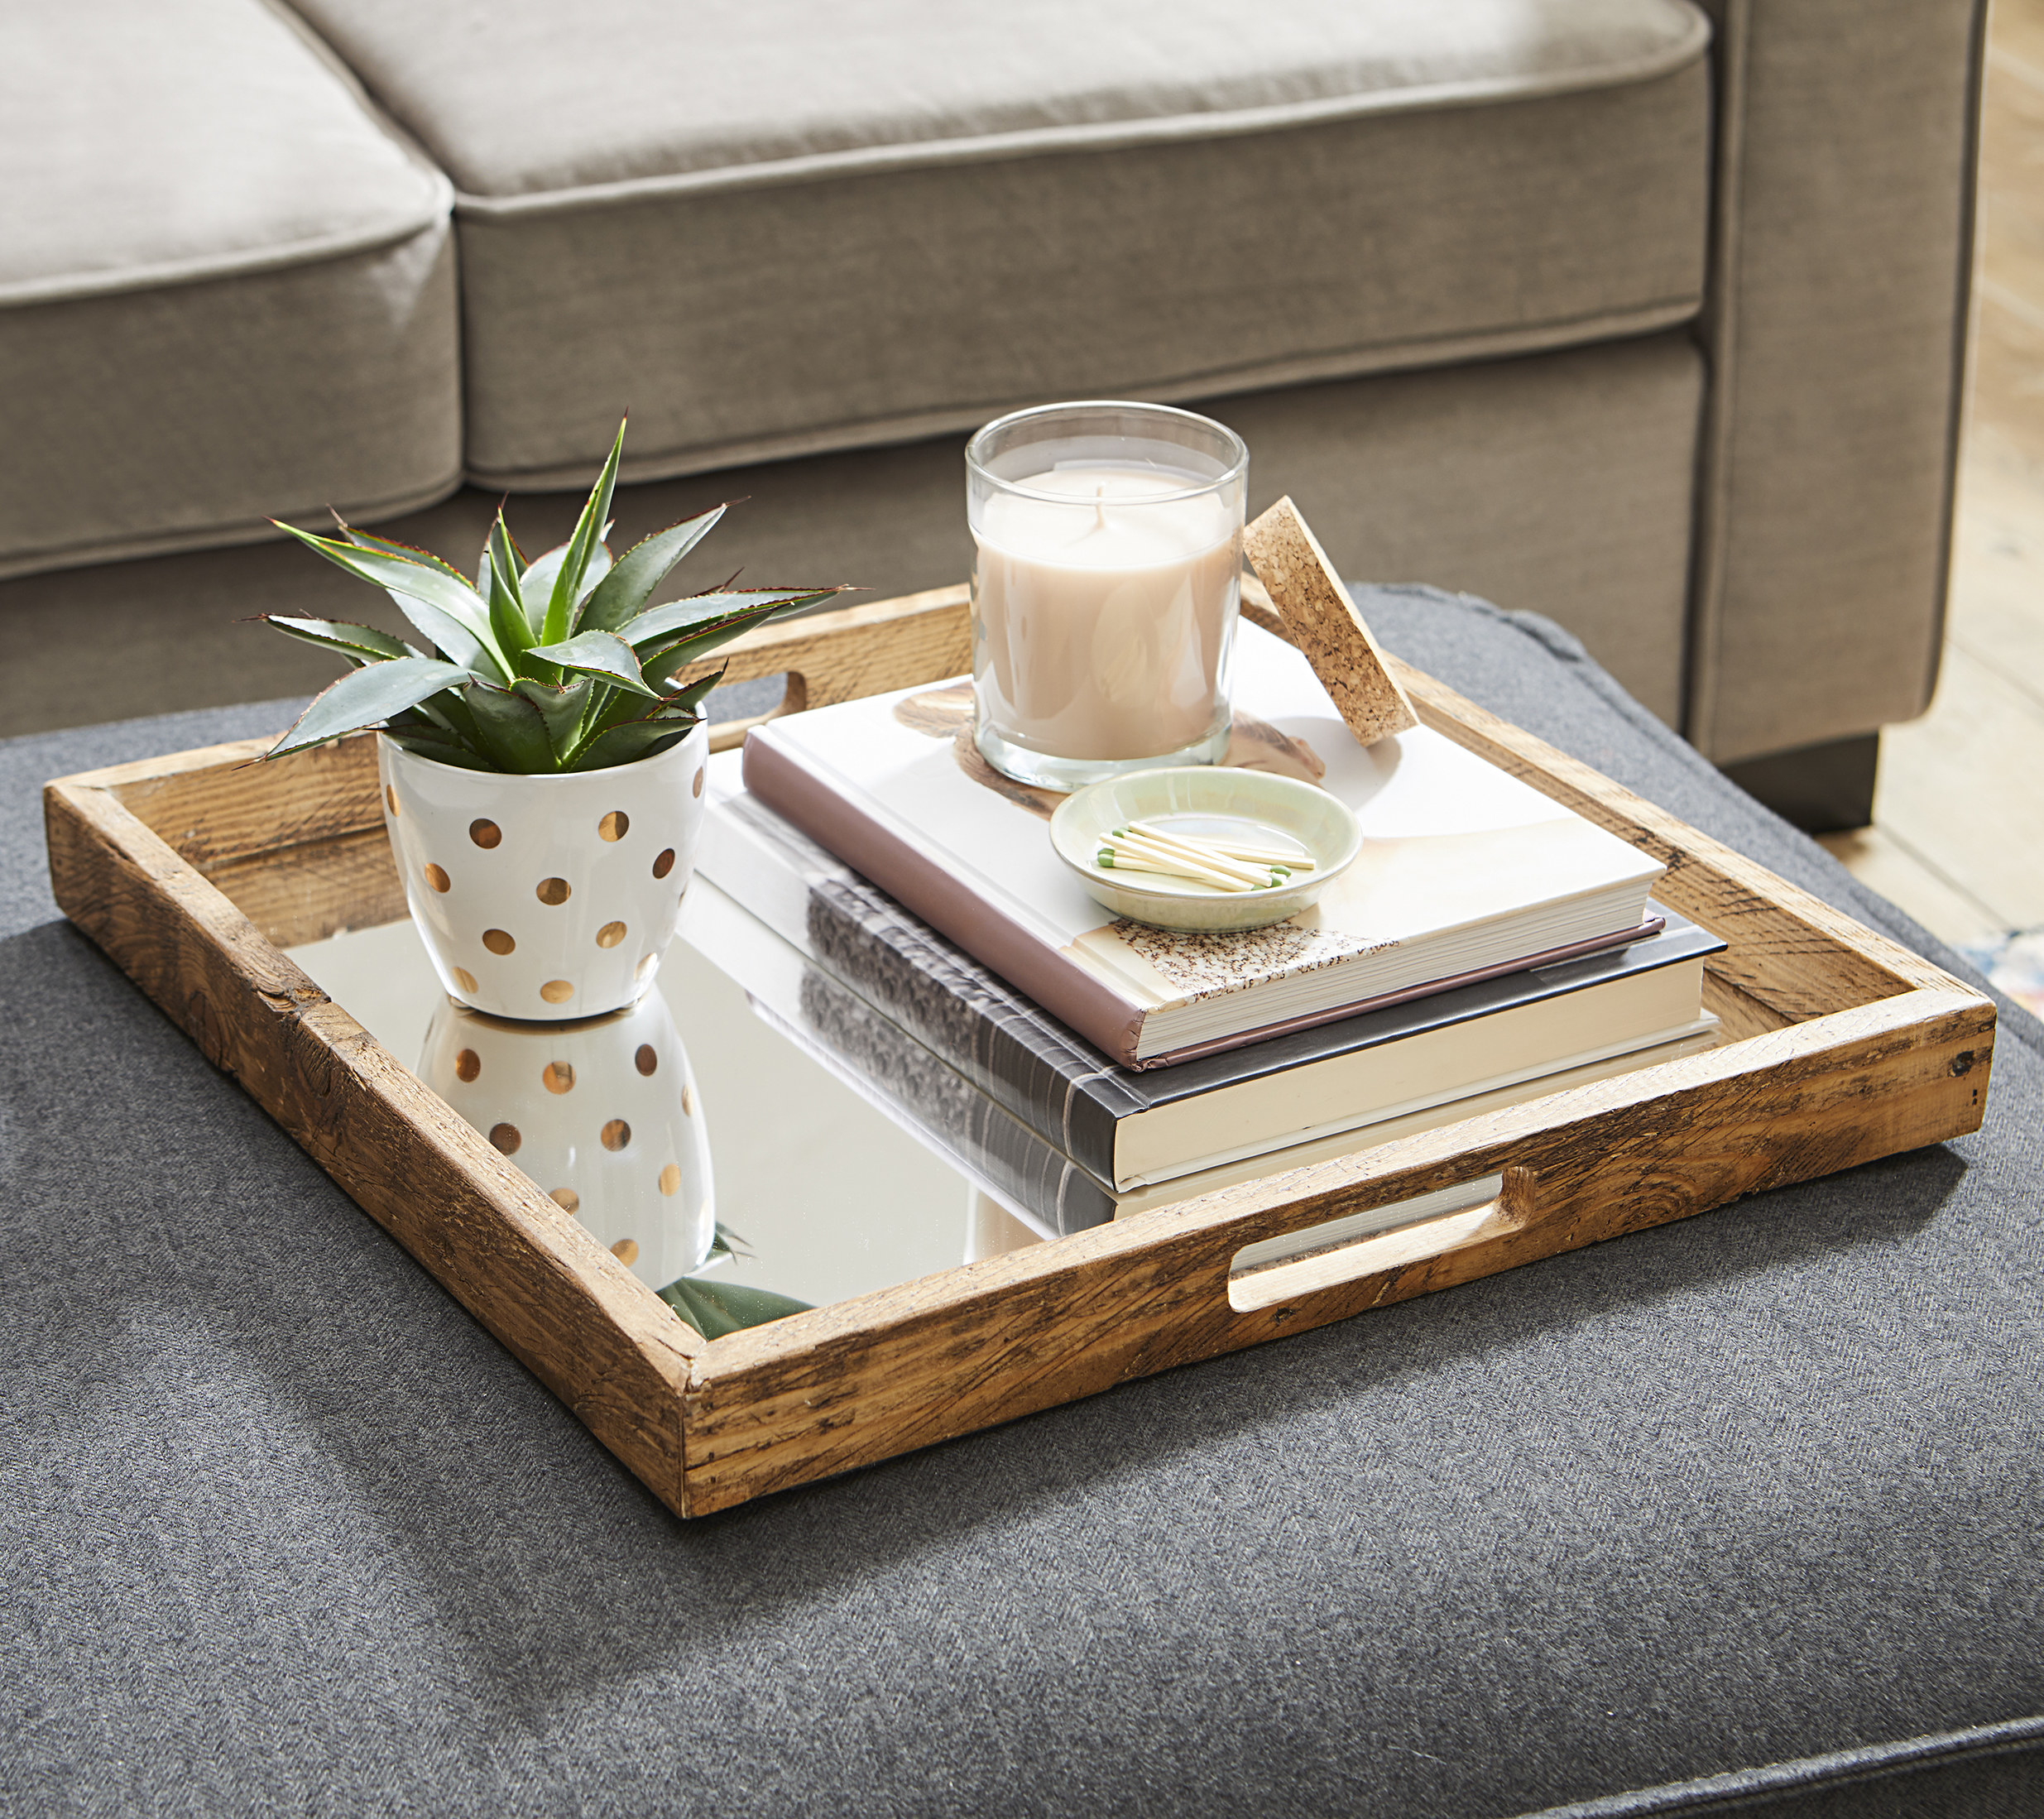 The decorative tray sitting on top of an ottoman, featuring a plant, books, and a candle.